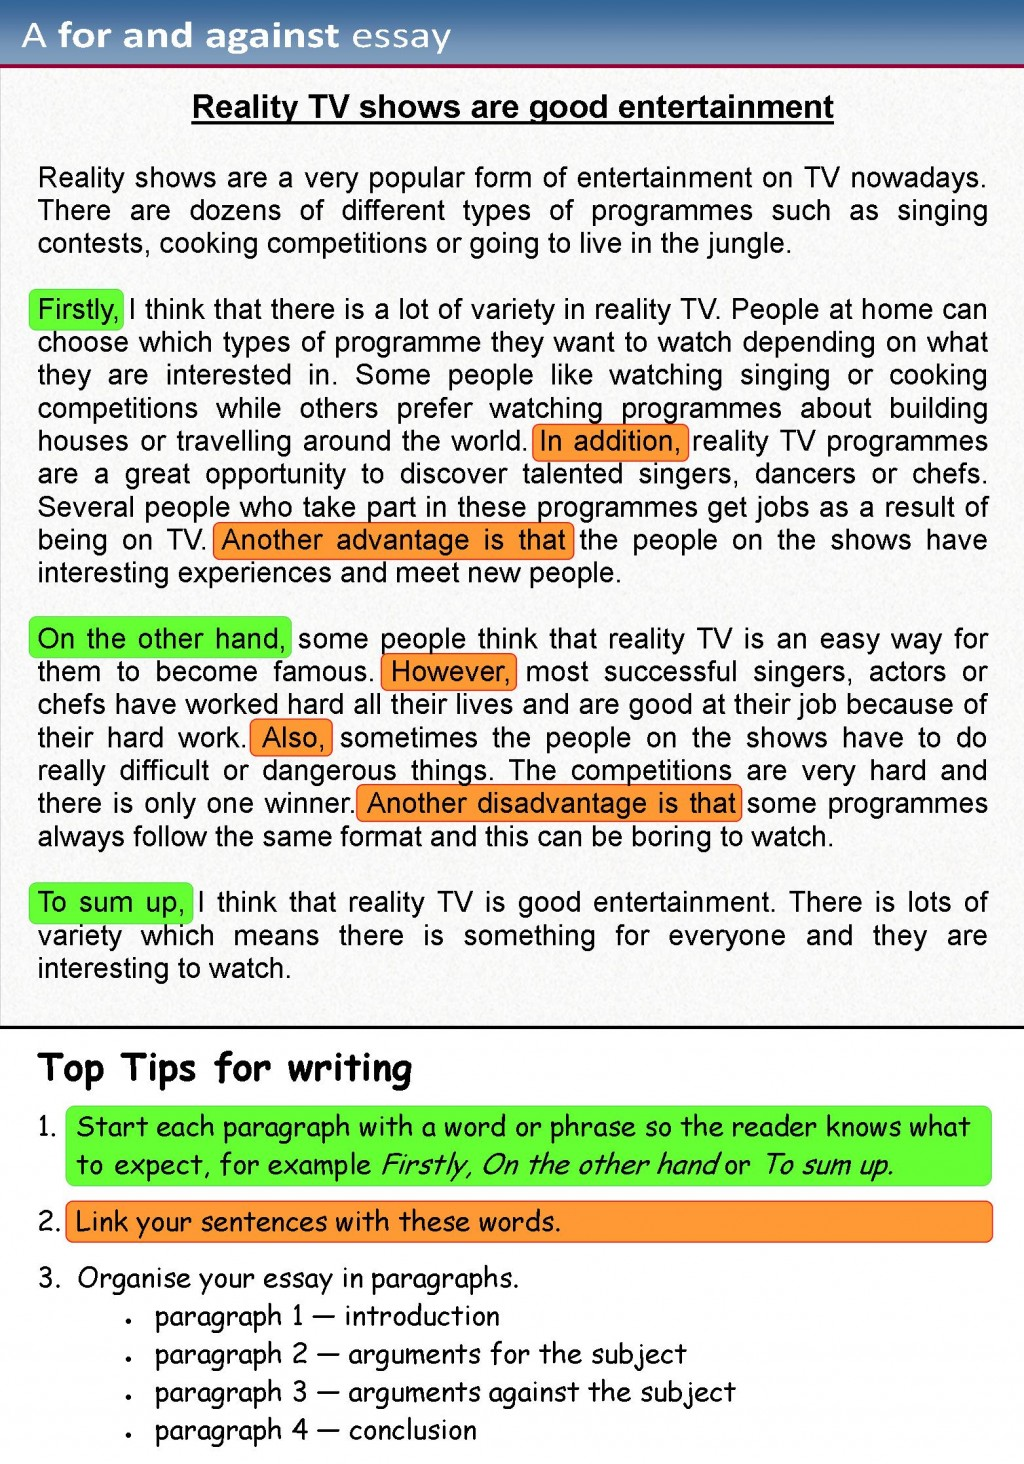 017 Grade English Essay Examples Example For Against 1 Wonderful 12 Narrative Provincial Exam Sample Manitoba Large